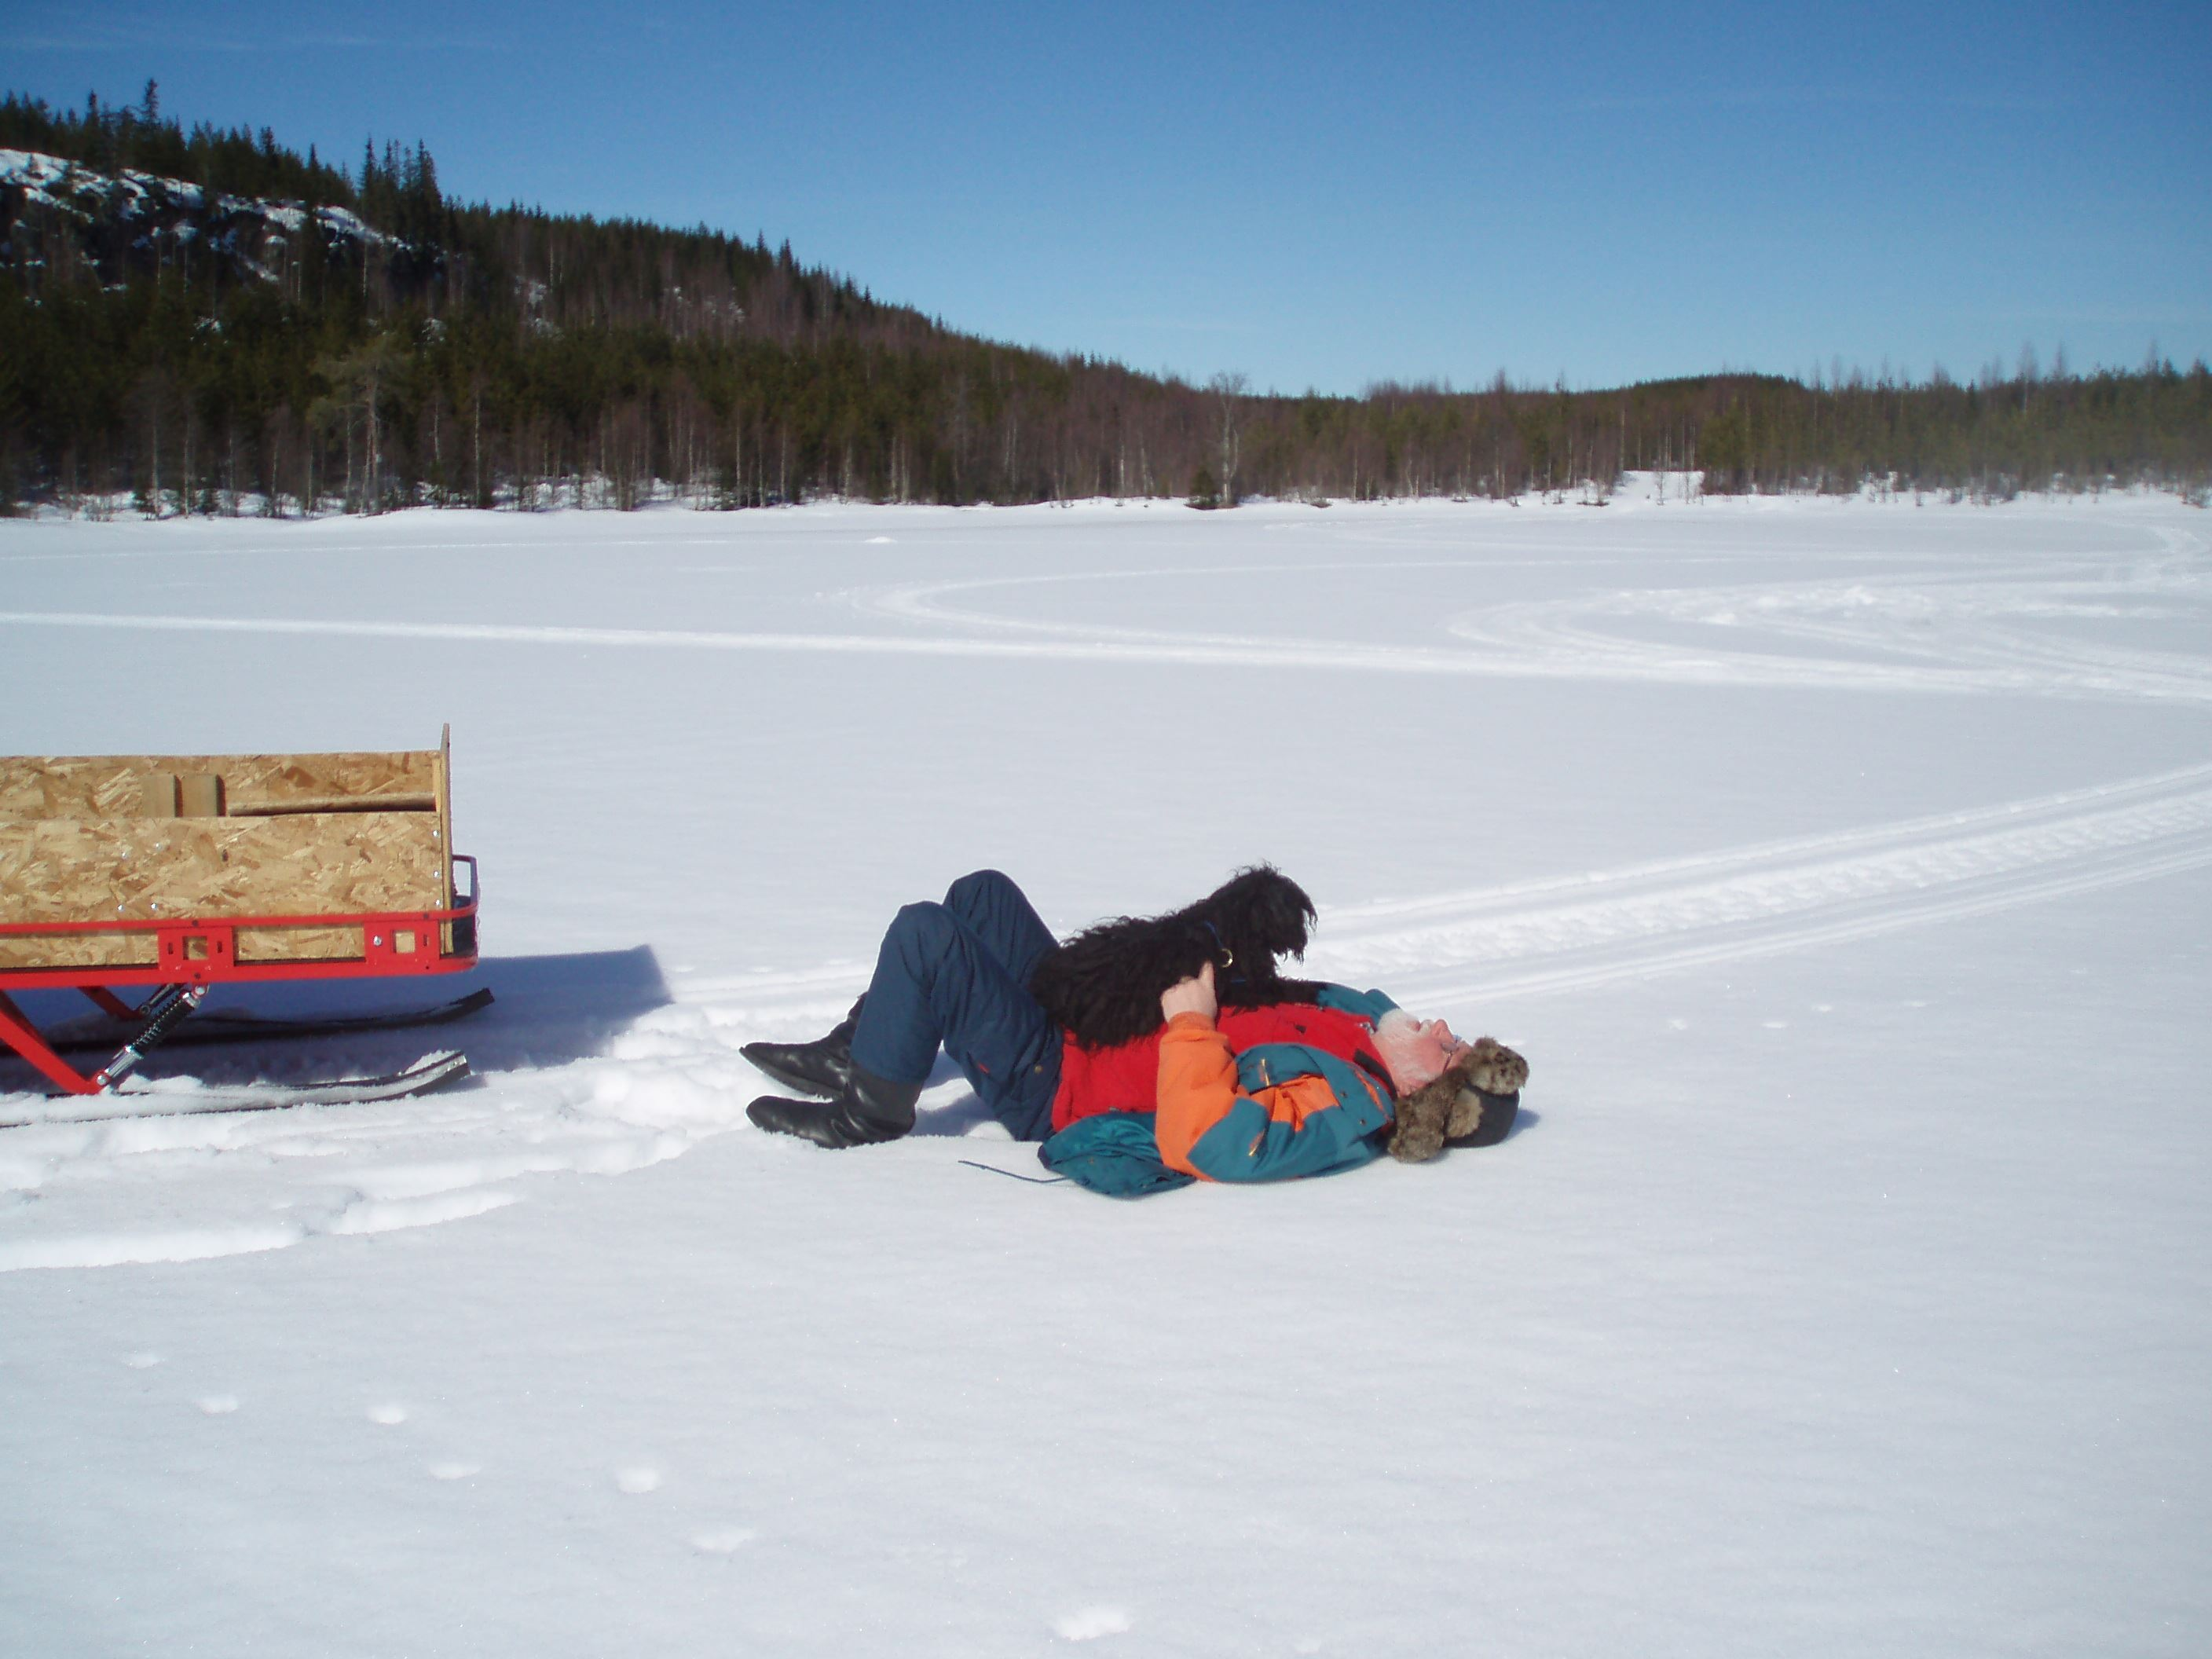 Winterfishing with snowscooter